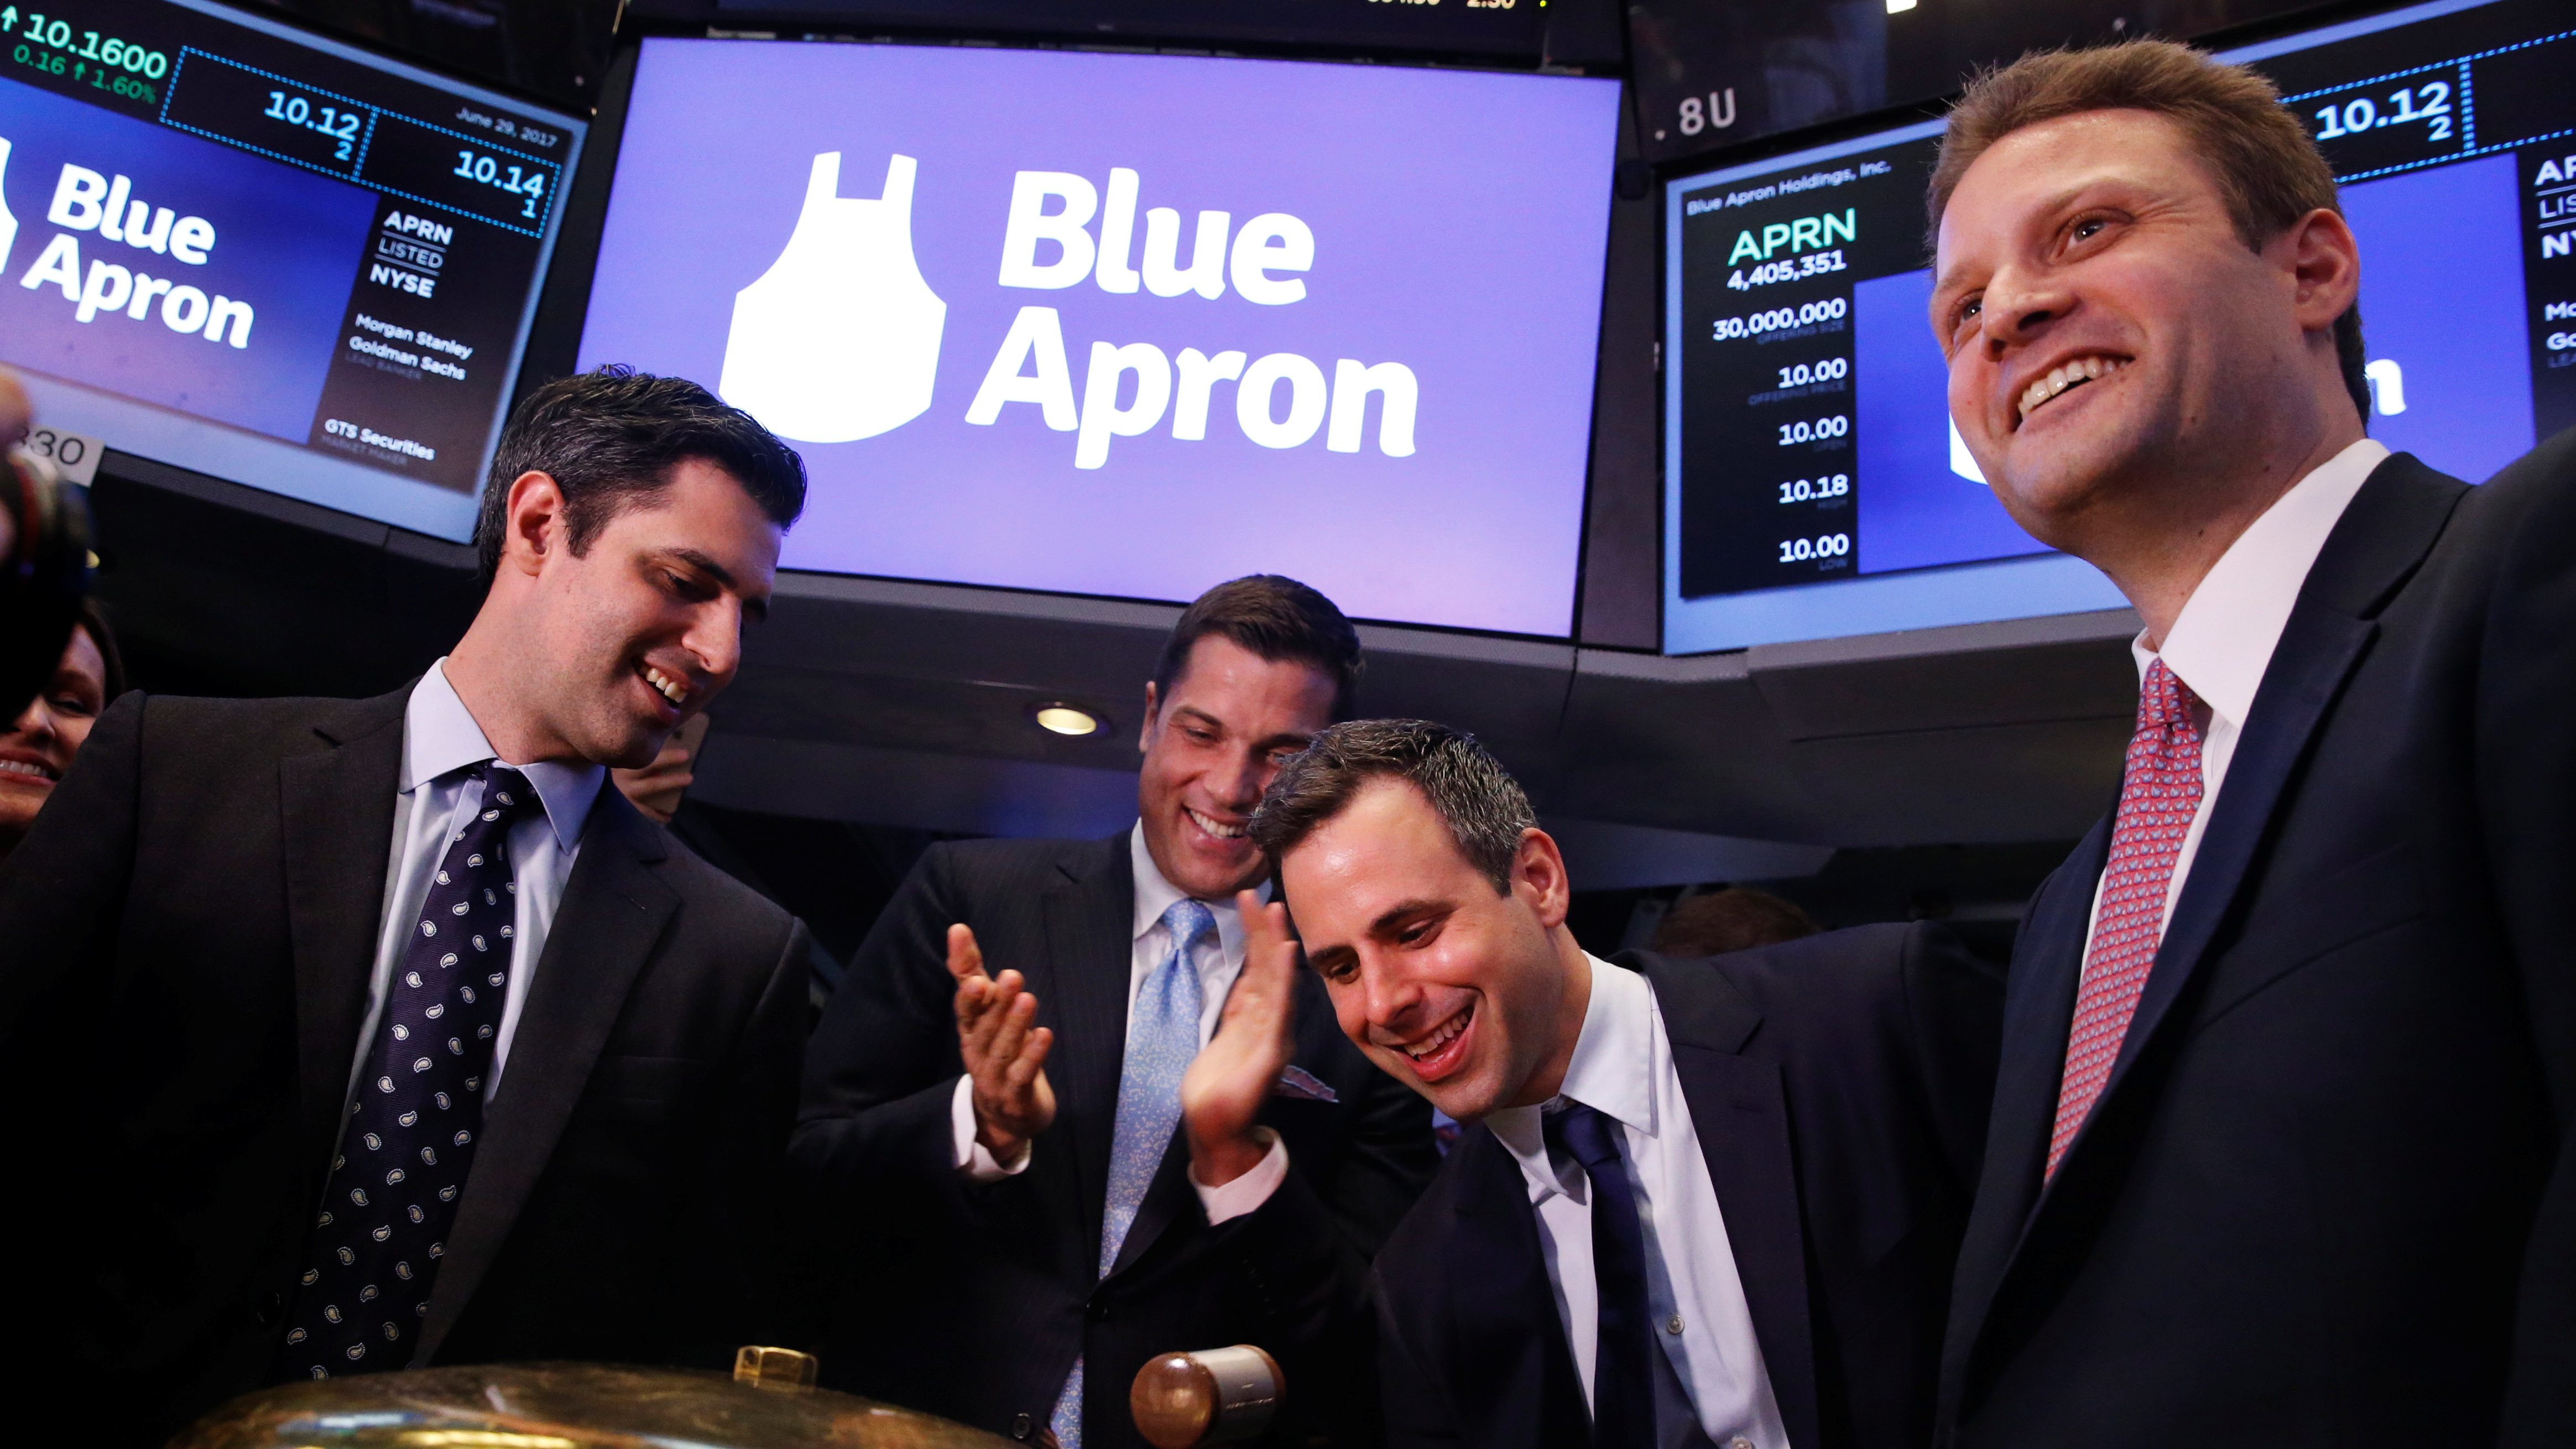 Blue Apron CEO Matthew B. Salzberg (R) watches as co-founder Matt Wadiak rings a ceremonial bell with Ilia Papas on the floor of the New York Stock Exchange for the company's IPO in New York, U.S., June 29, 2017.  REUTERS/Lucas Jackson - RTS194QL